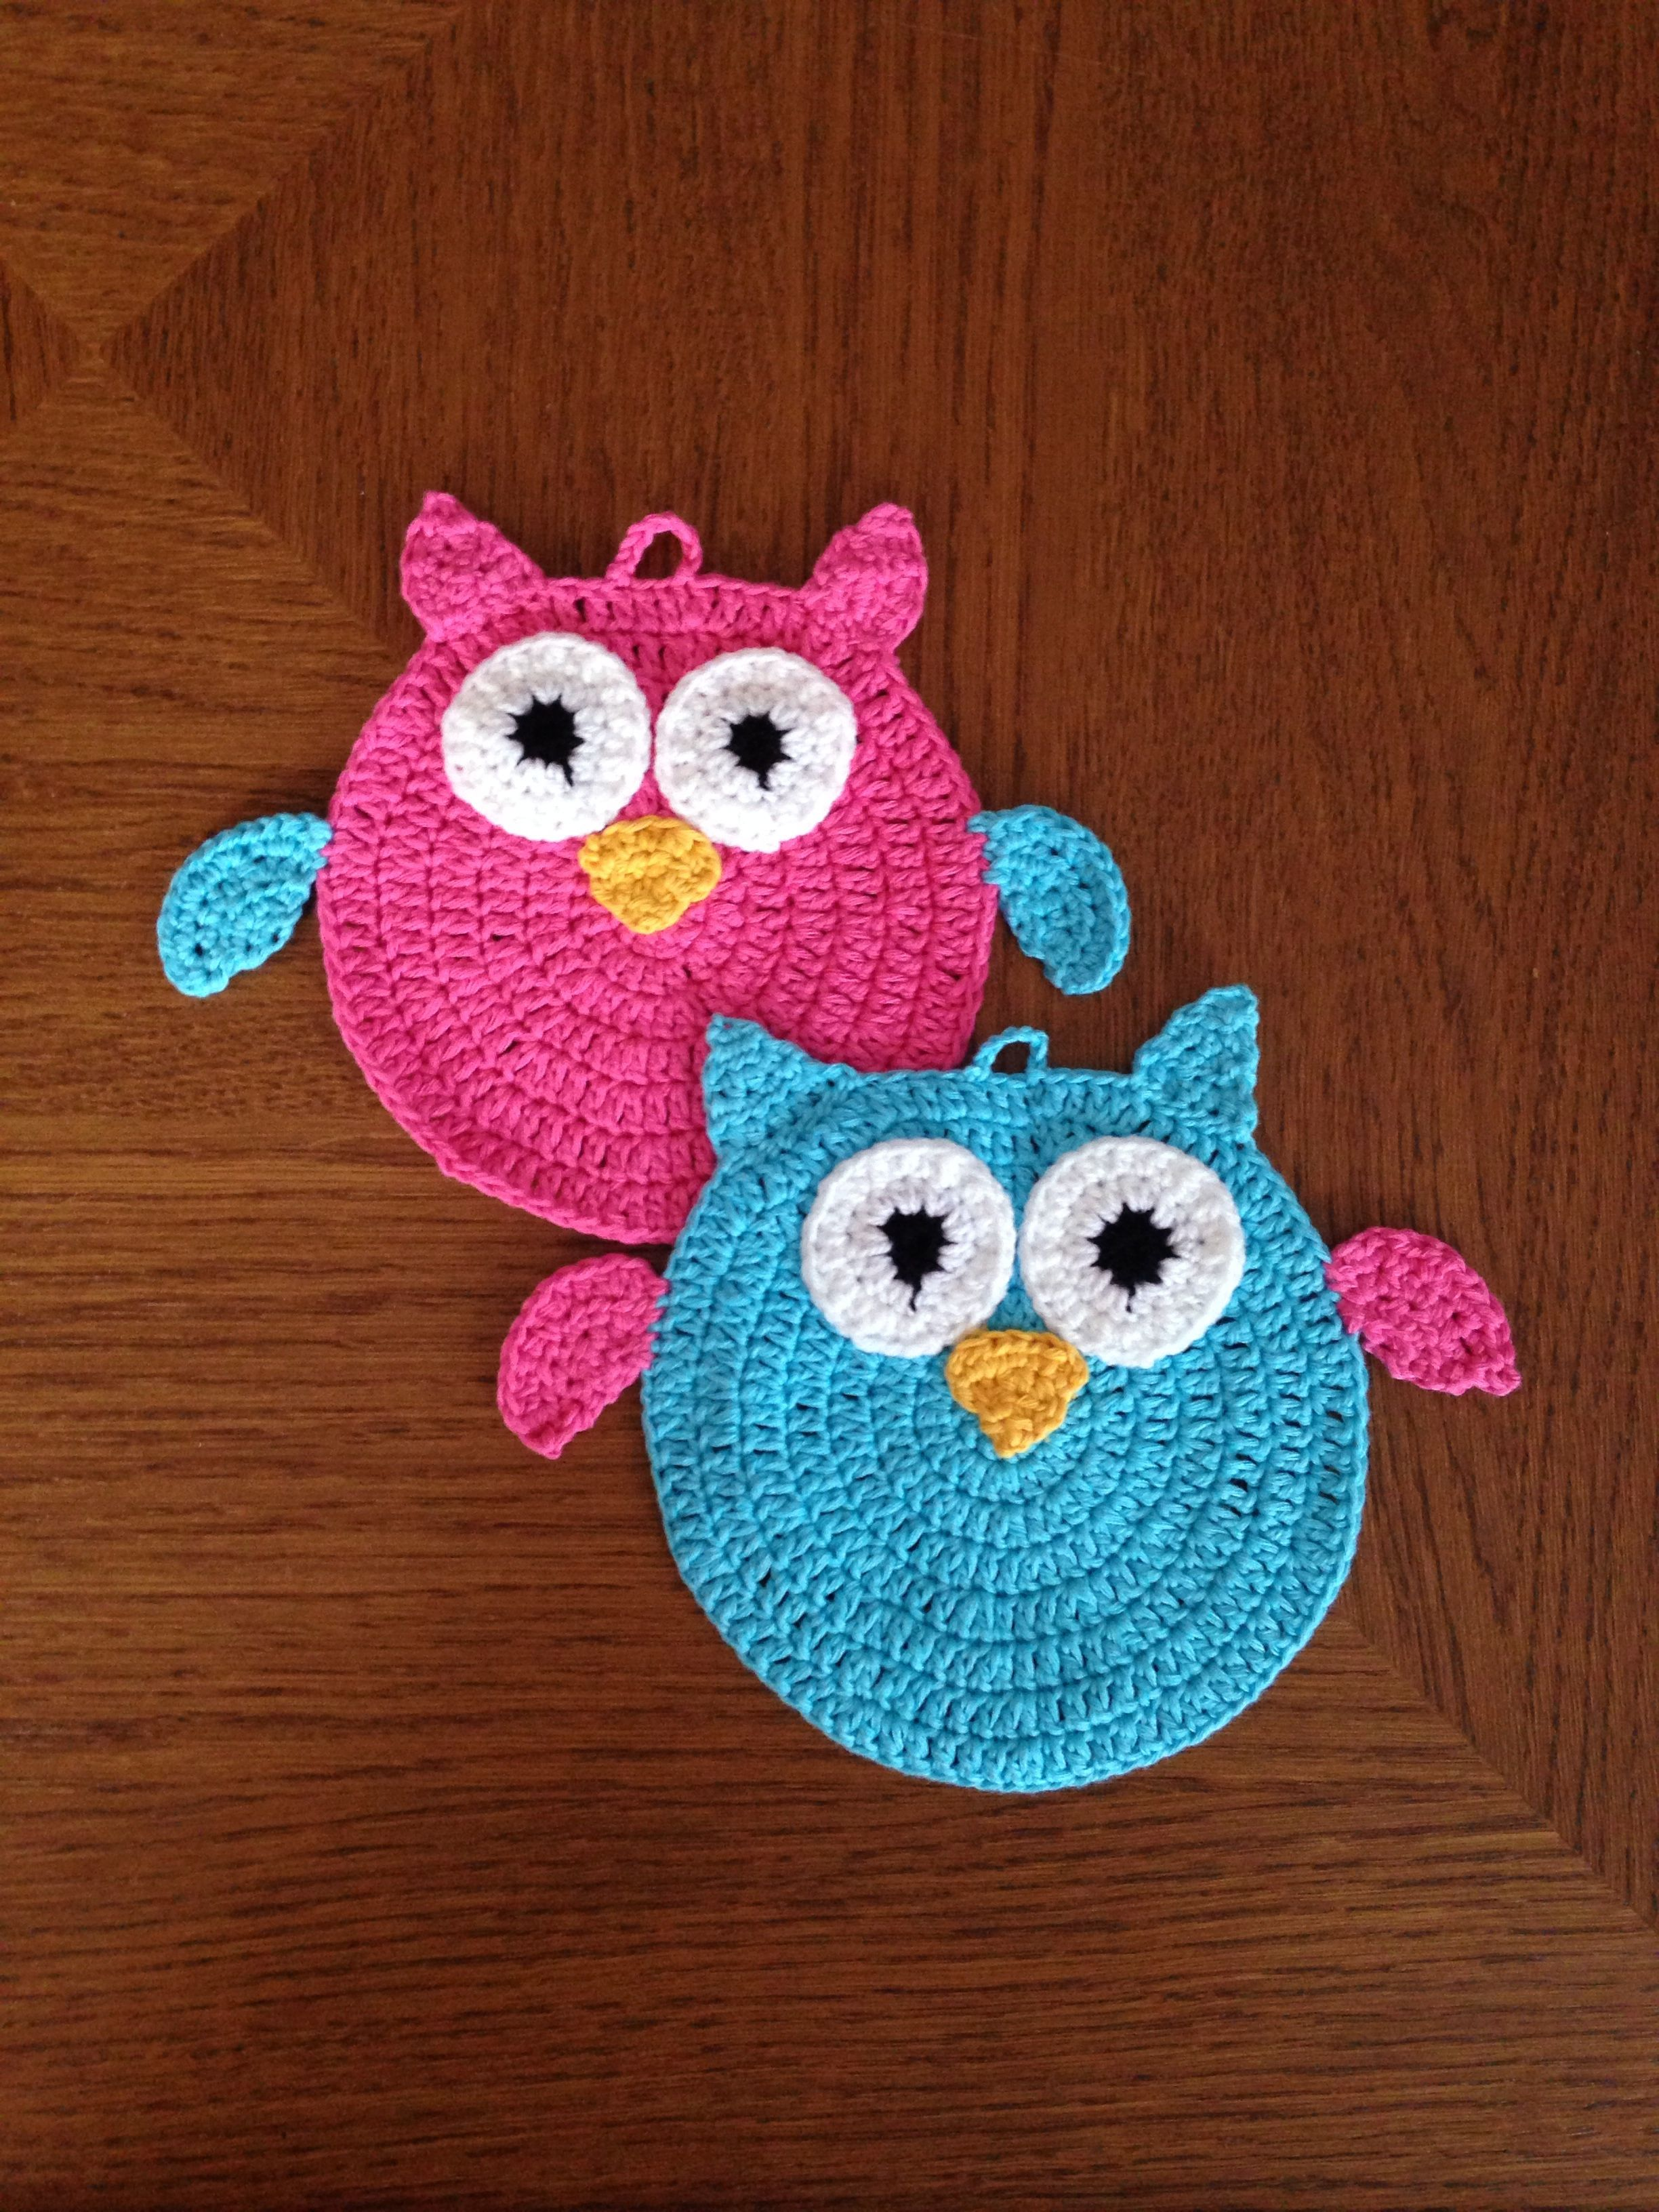 Crochet Owl Oven Cloth | Crochet potholders, coasters and ...